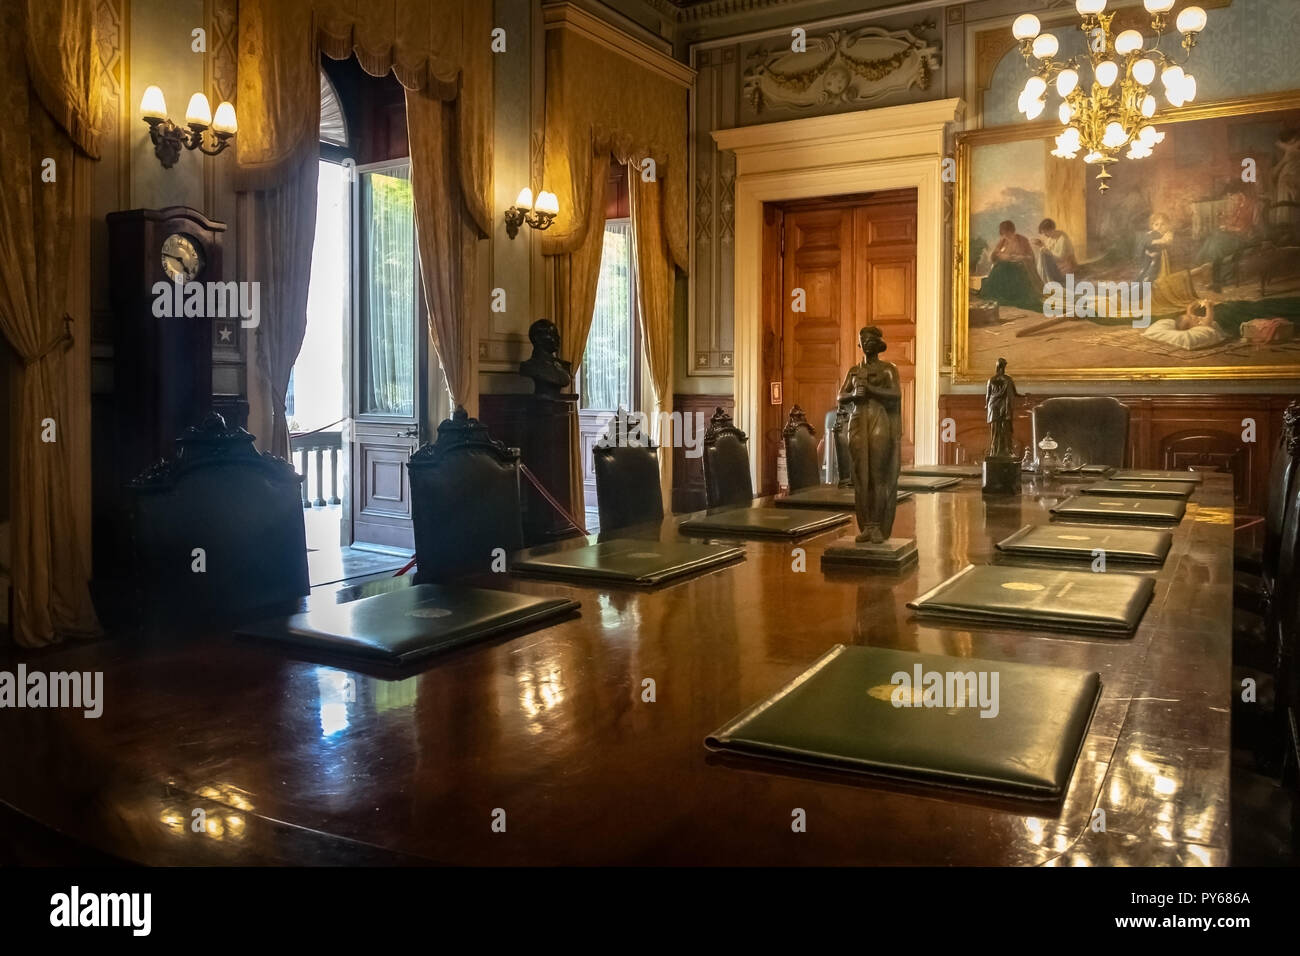 Catete Palace Ministerial room, the former presidential palace now houses the Republic Museum - Rio de Janeiro, Brazil - Stock Image